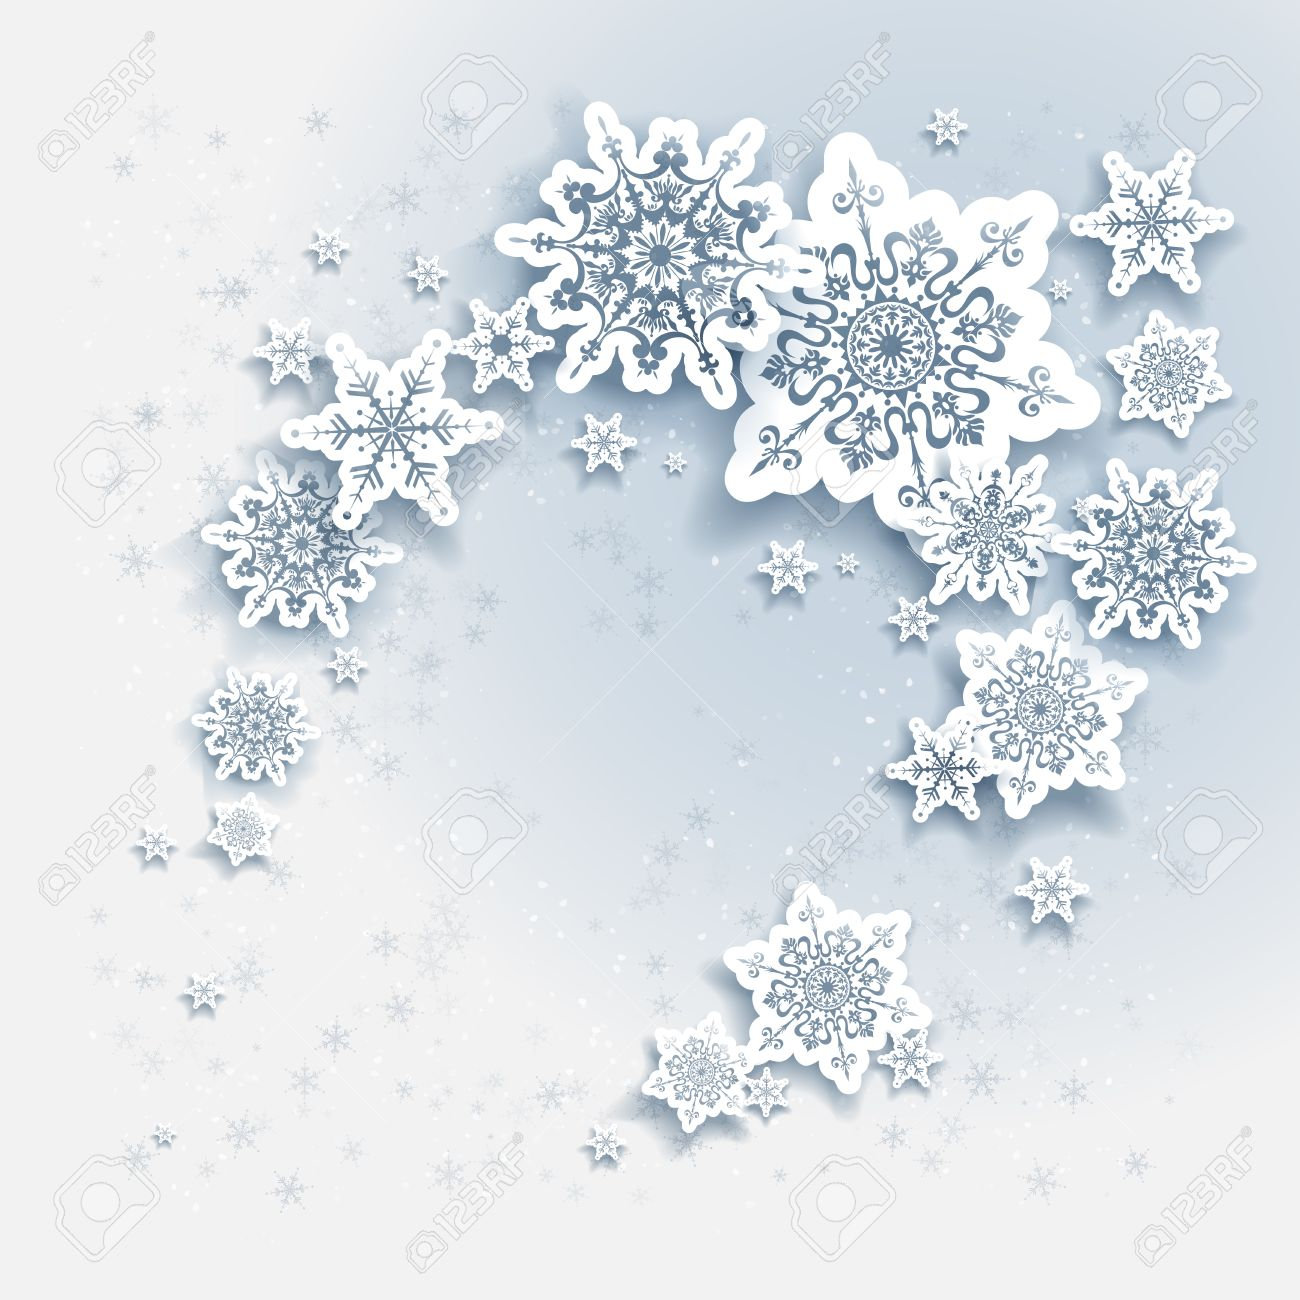 Snowflakes holiday Christmas background for banners, advertising, leaflet, cards, invitation and so on. - 46572763